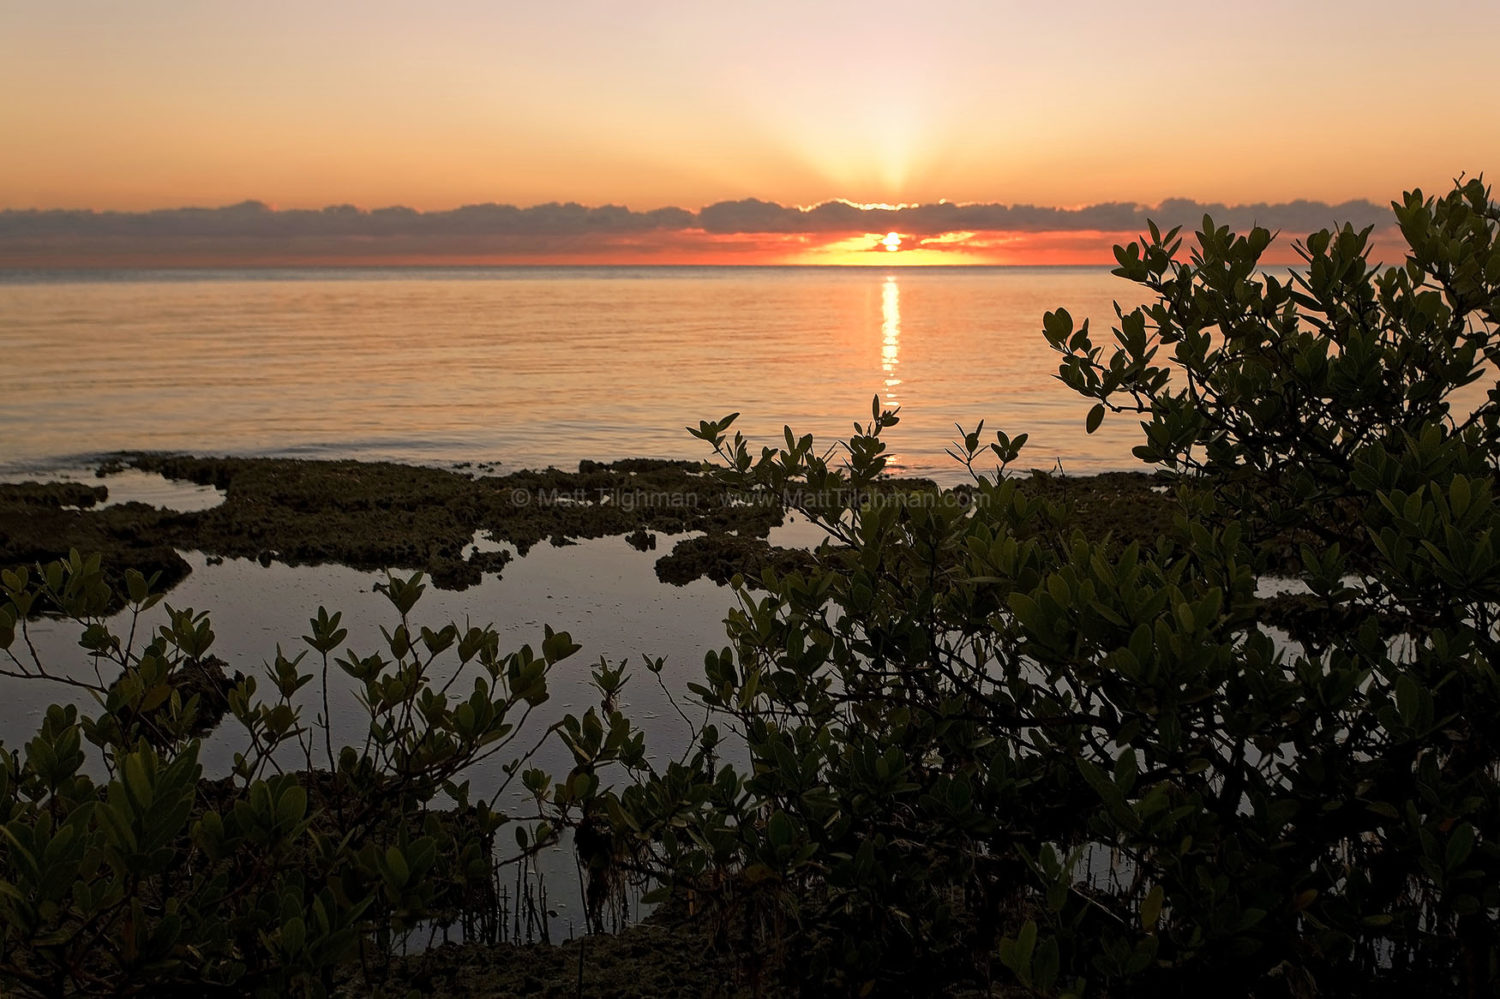 Fine art stock photograph of South Florida sunrise amidst mangroves and Bear Cut's famous fossilized reef, on Key Biscayne.